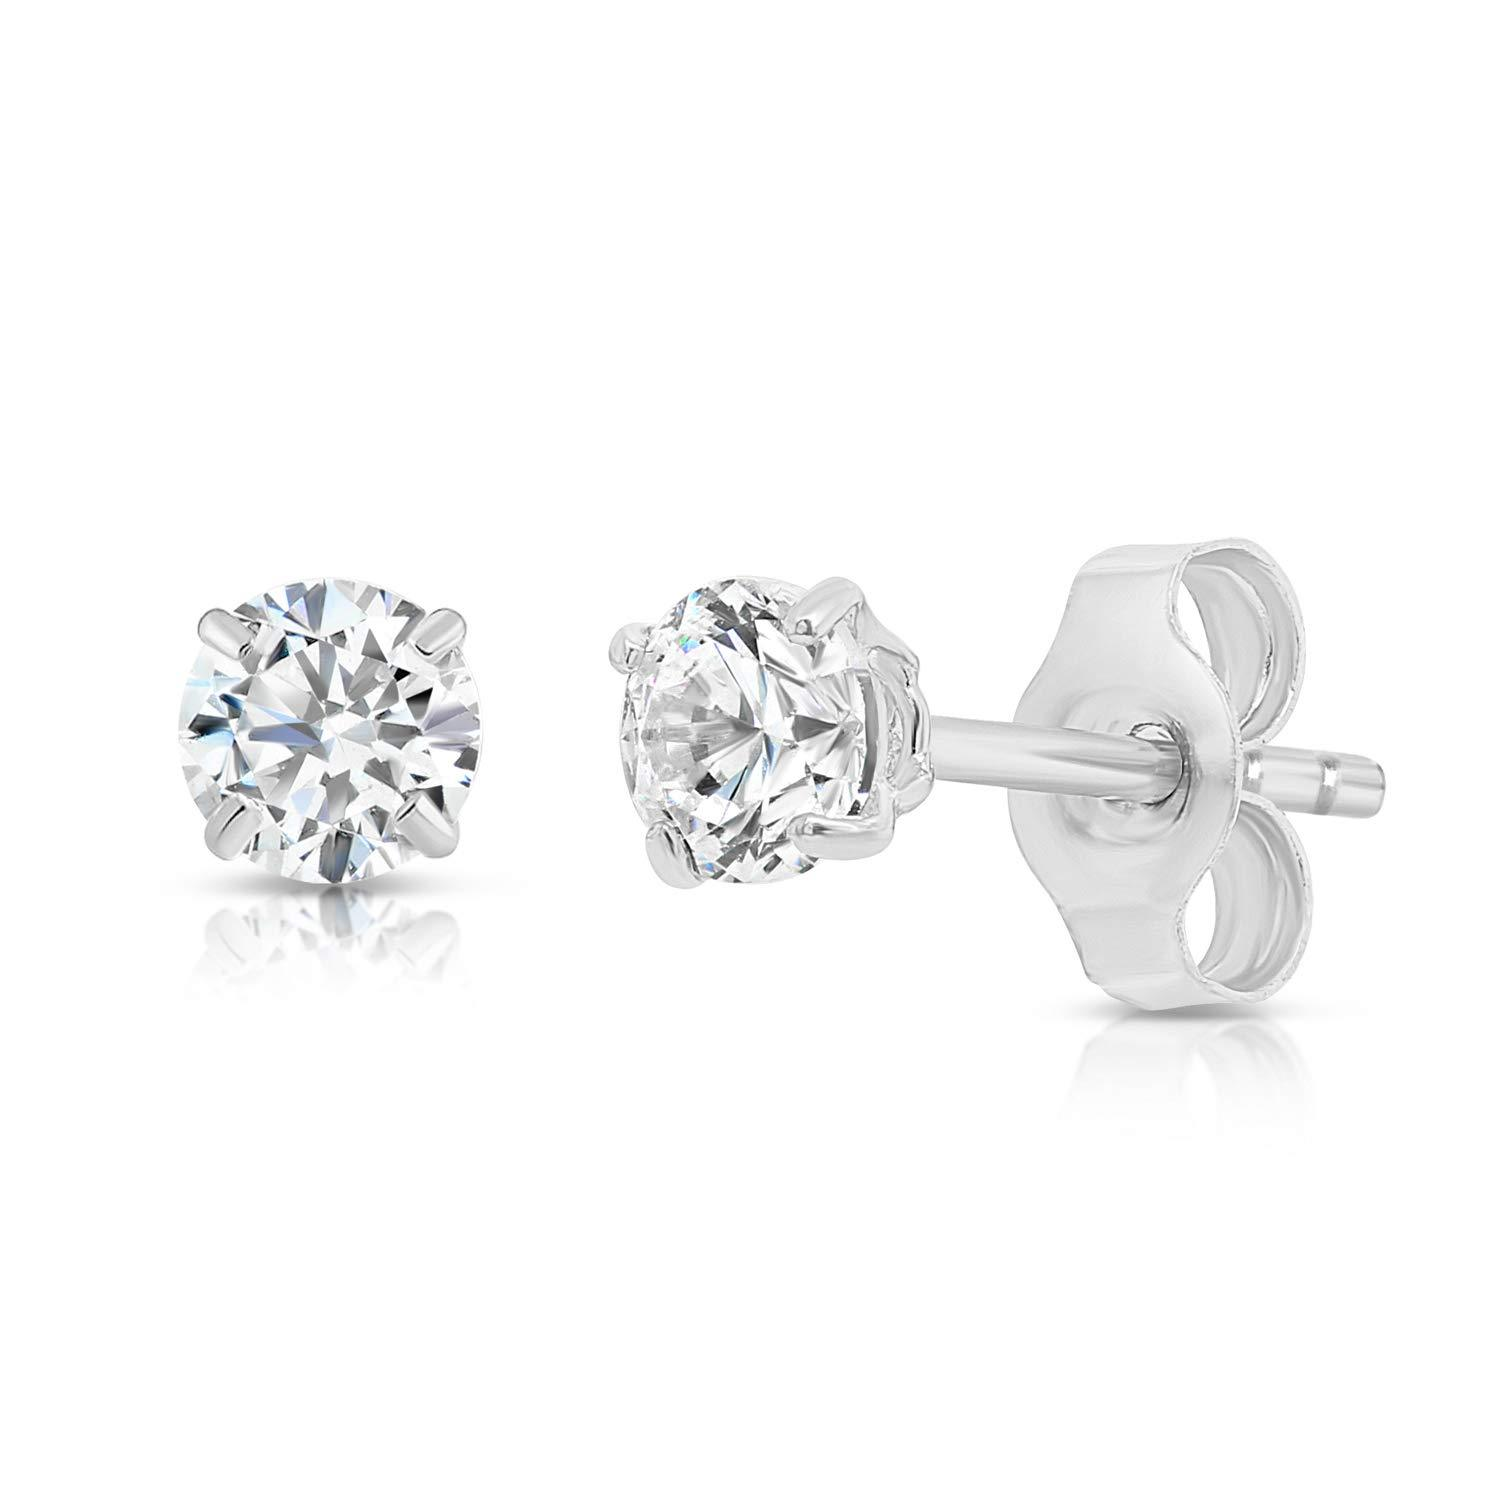 14k White Gold Solitaire Round Cubic Zirconia Stud Earrings with Gold butterfly  image 2